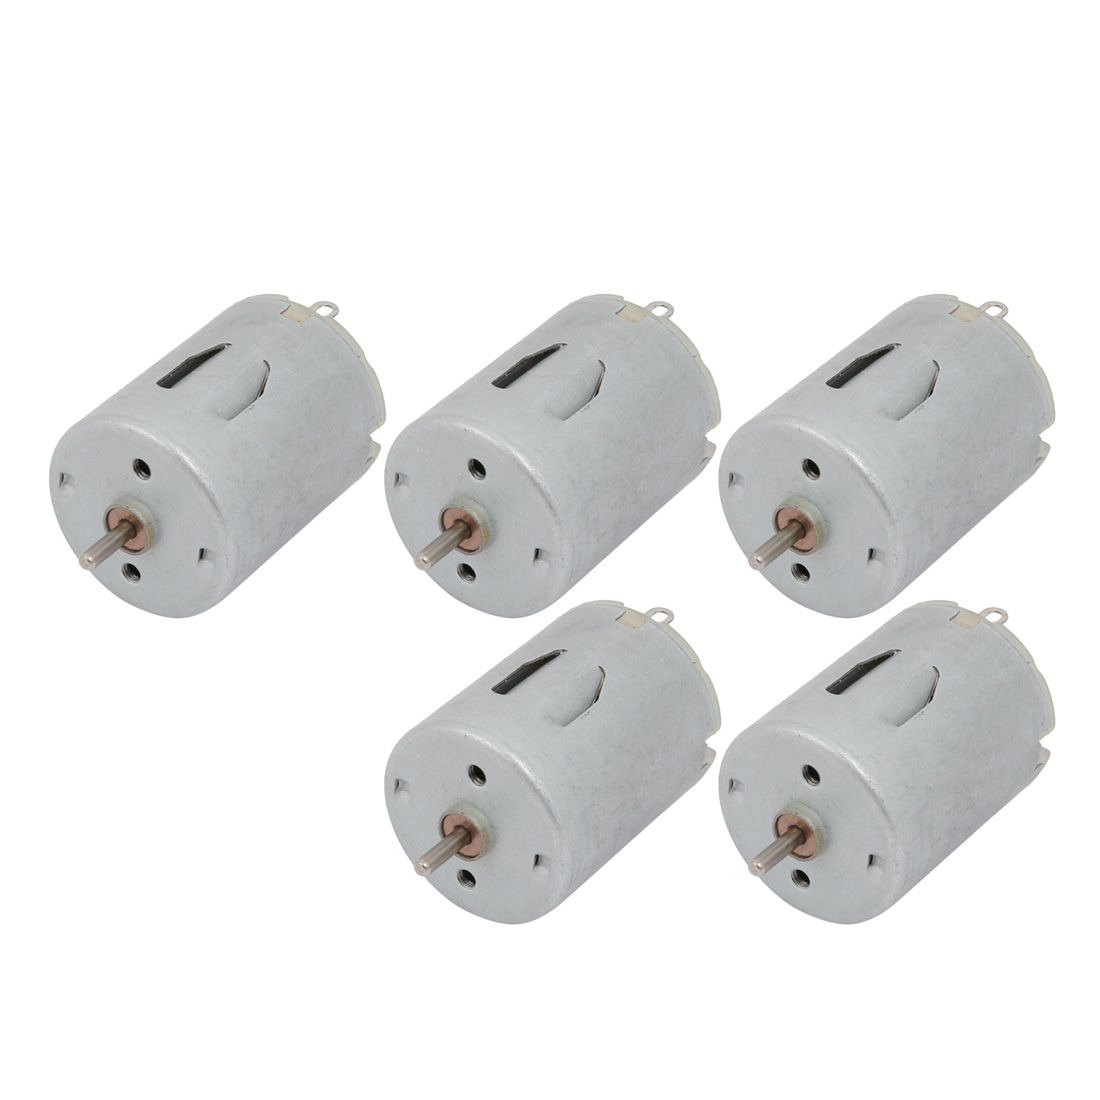 5Pcs DC6V 12000RPM 2mm Dia Shaft High Speed Micro DC Motor for RC Model Toy